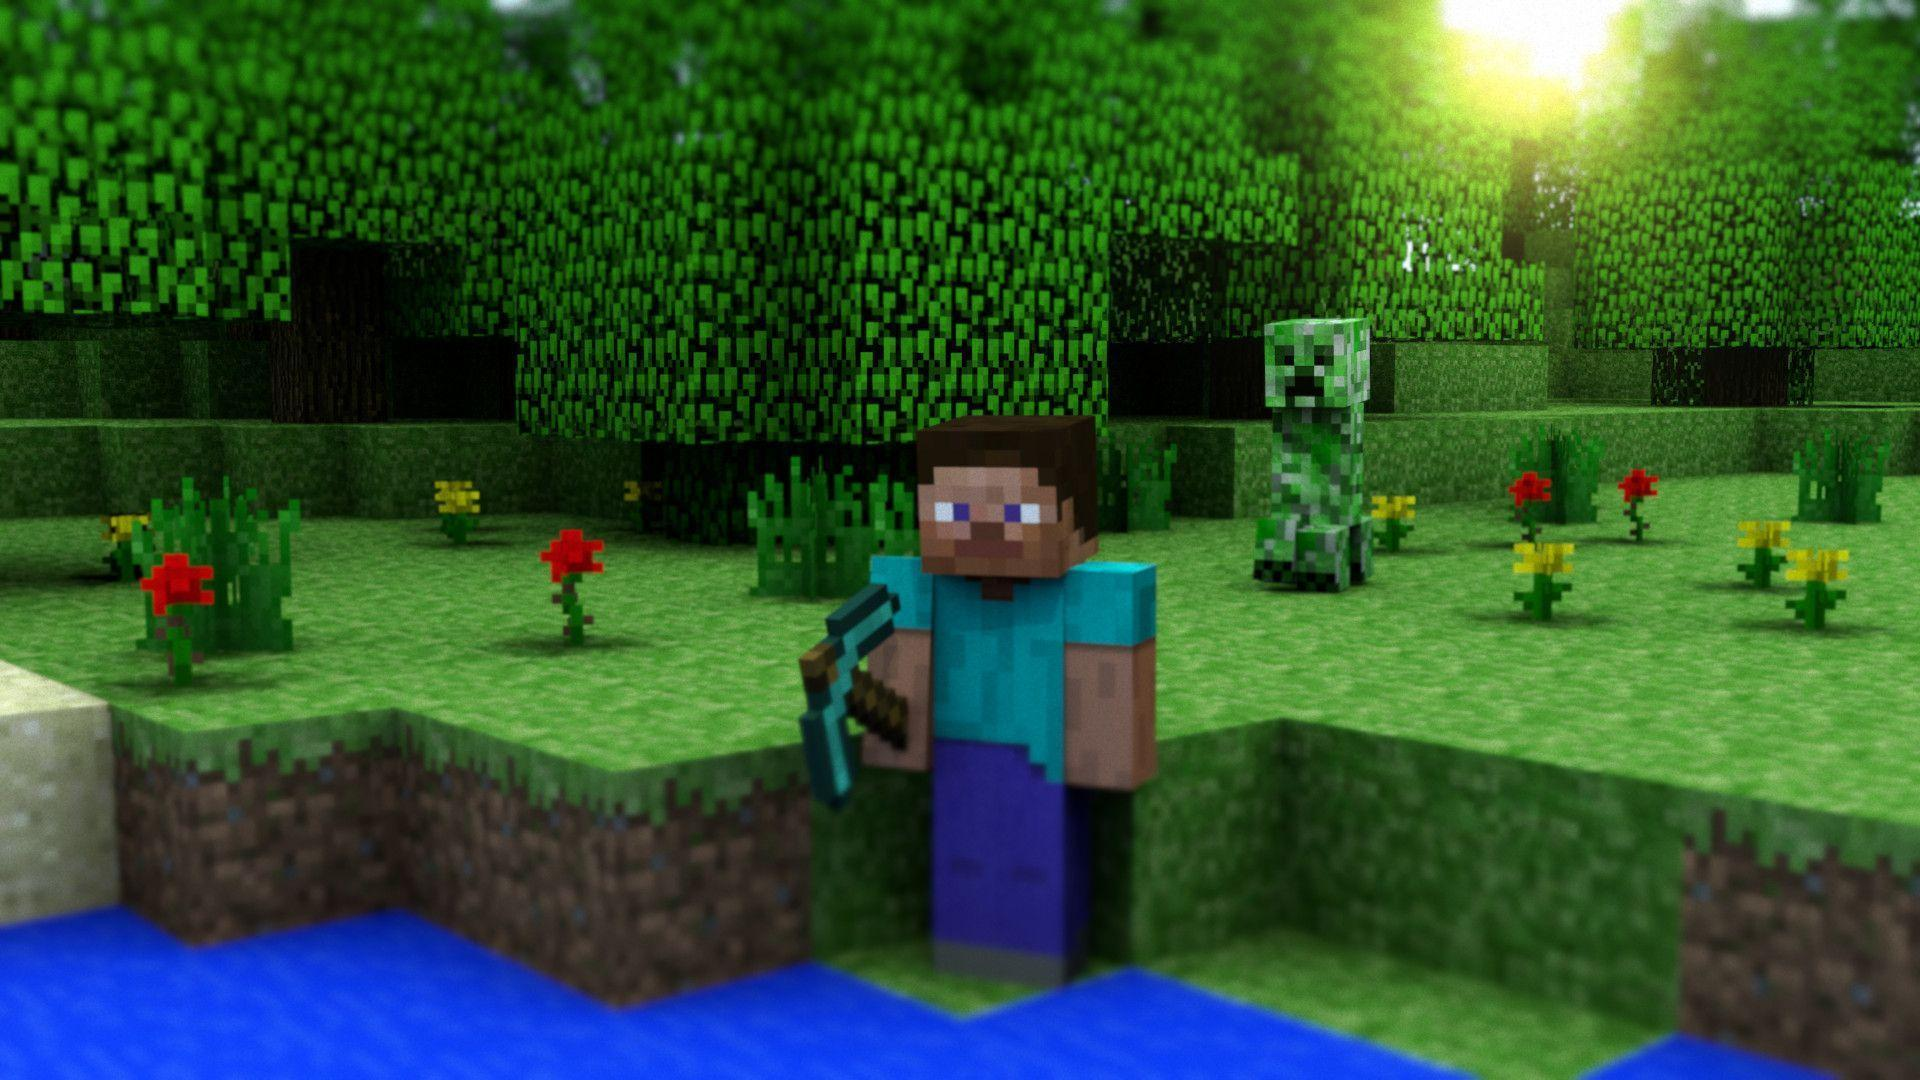 Minecraft&Oculus Support is Coming Soon